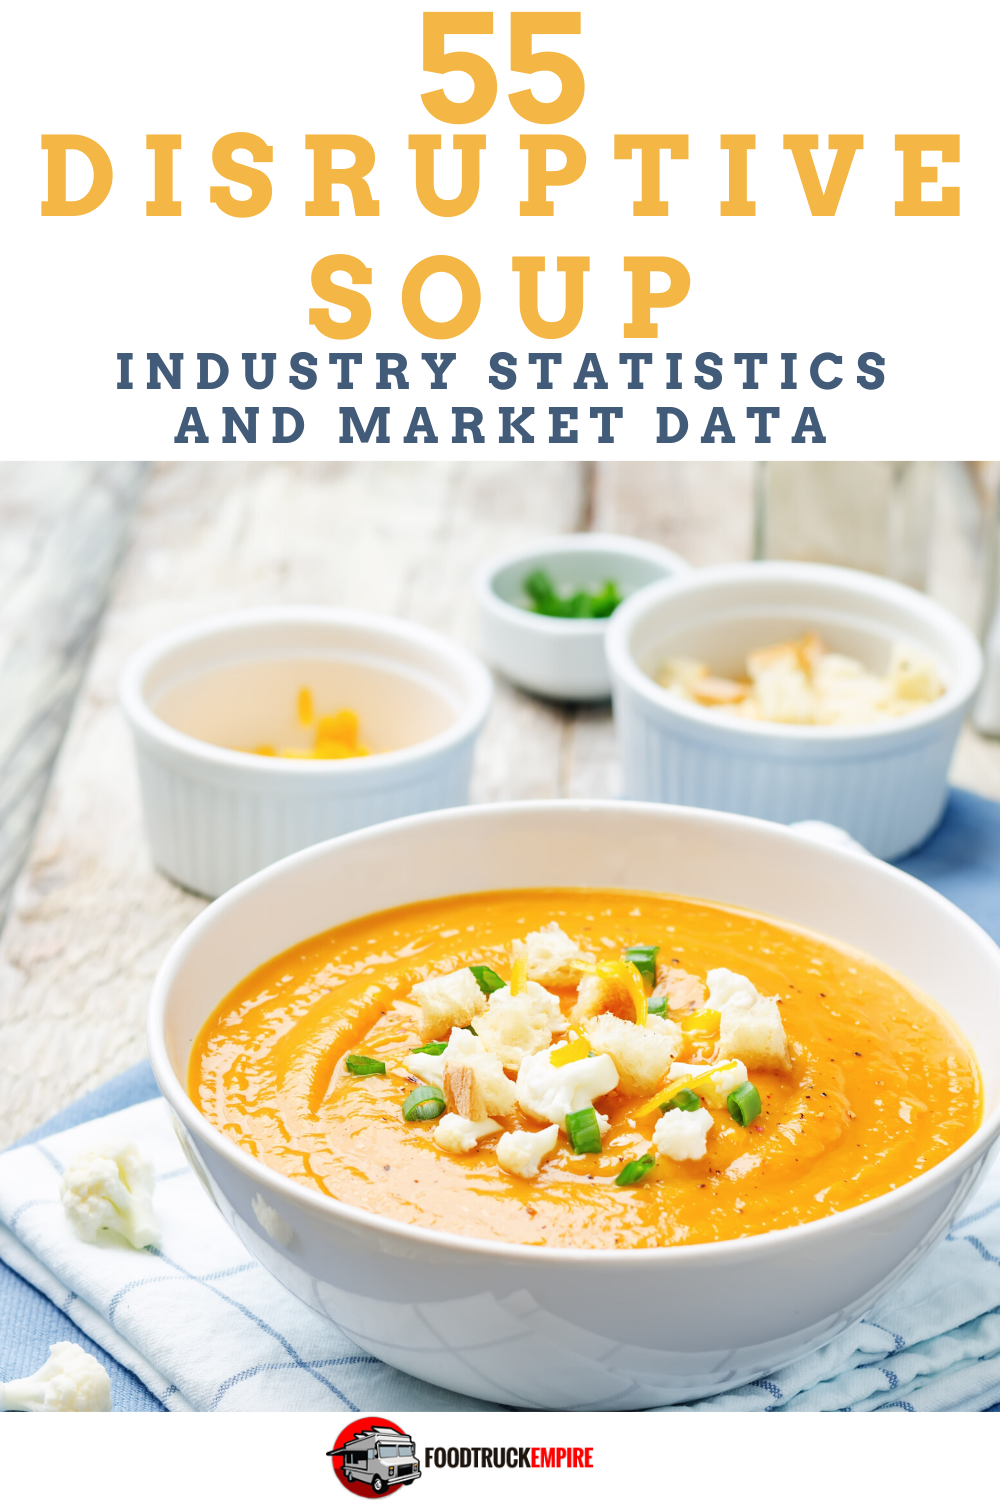 55 Disruptive Soup Industry Statistics and Market Data